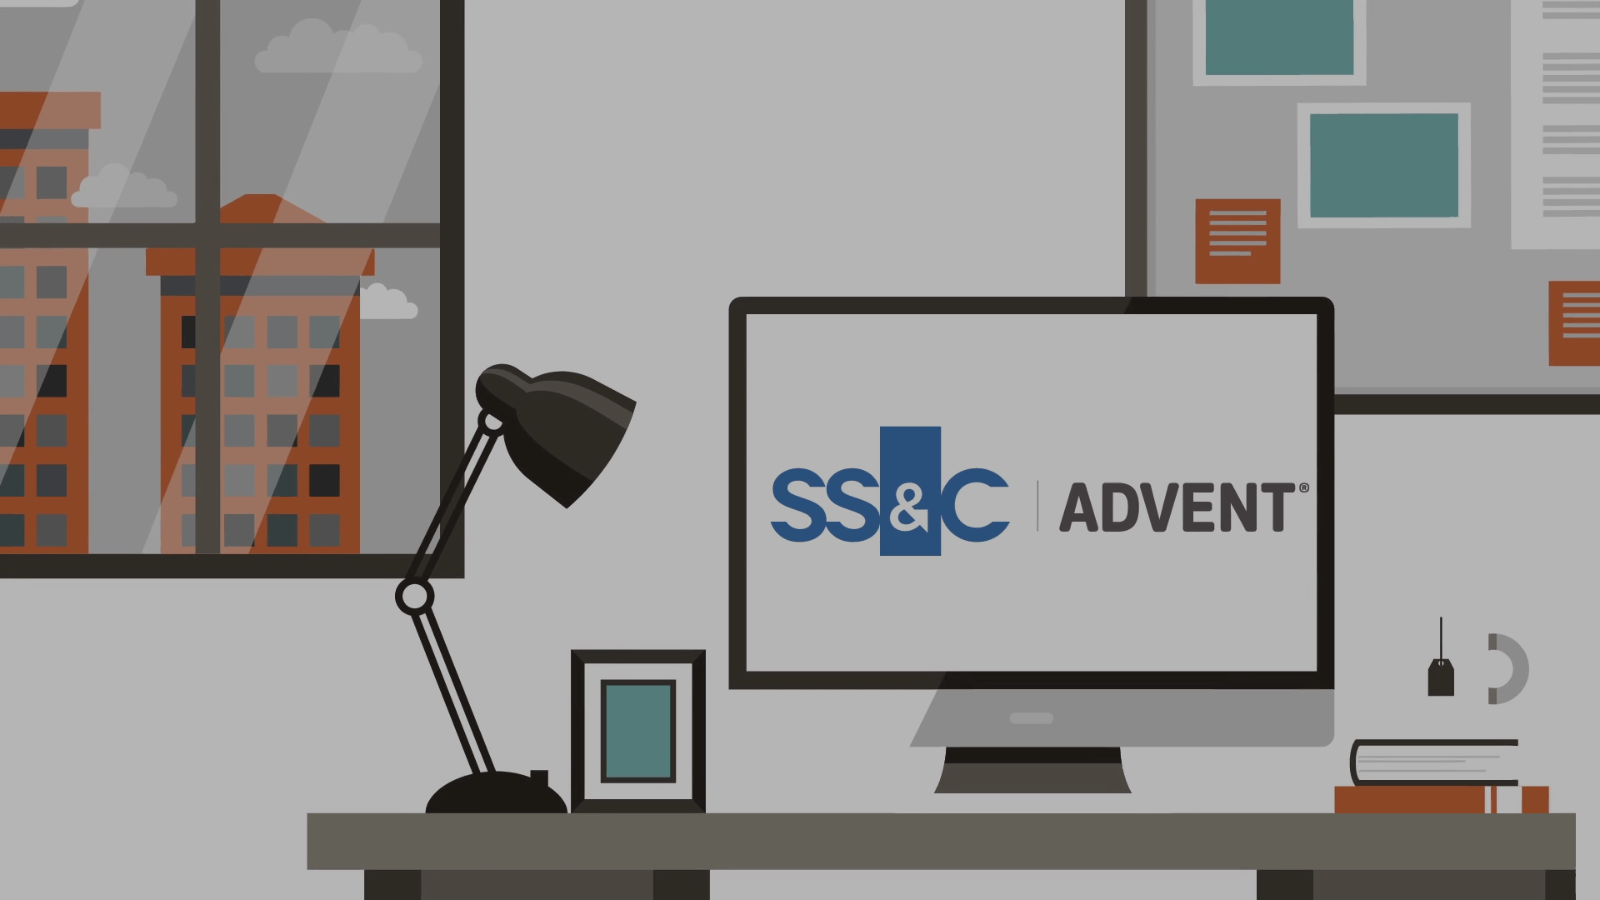 poster image for <p>SS&C Advent for Wealth Managers</p>